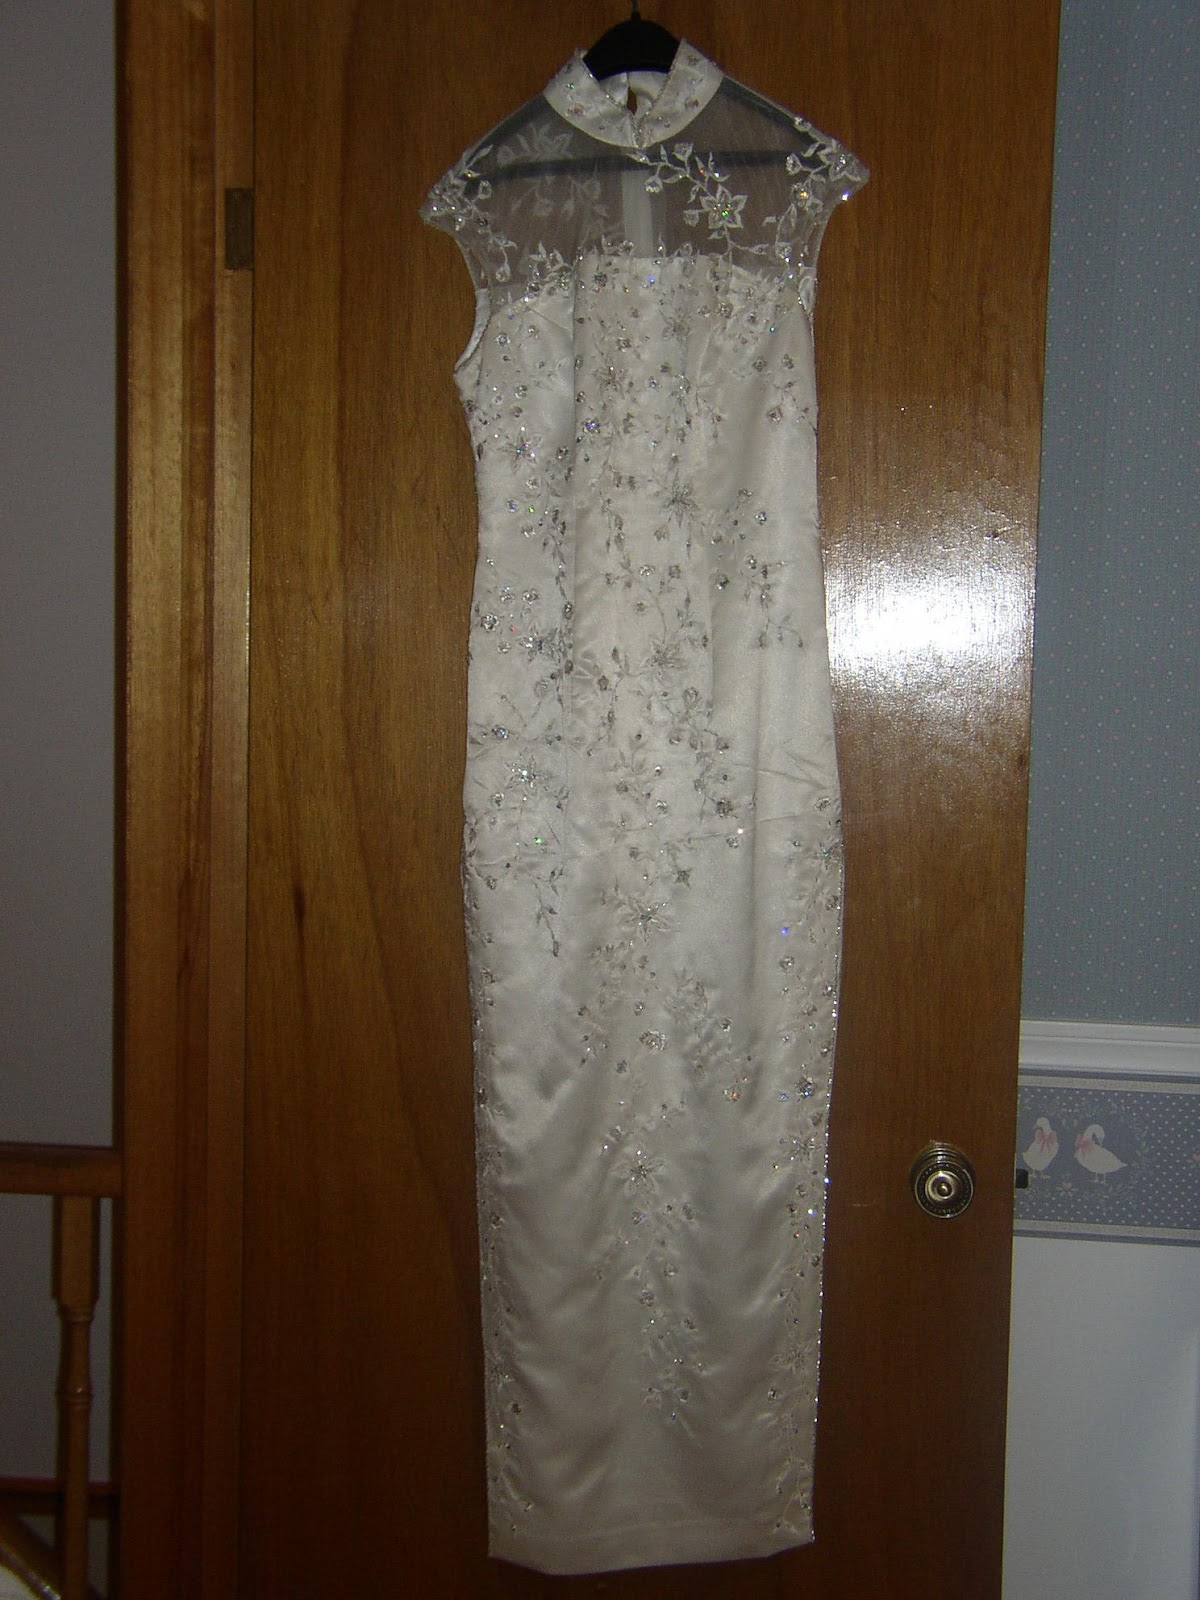 wedding dress. Image by zorbs. Cost a little less than 0 Canadian.